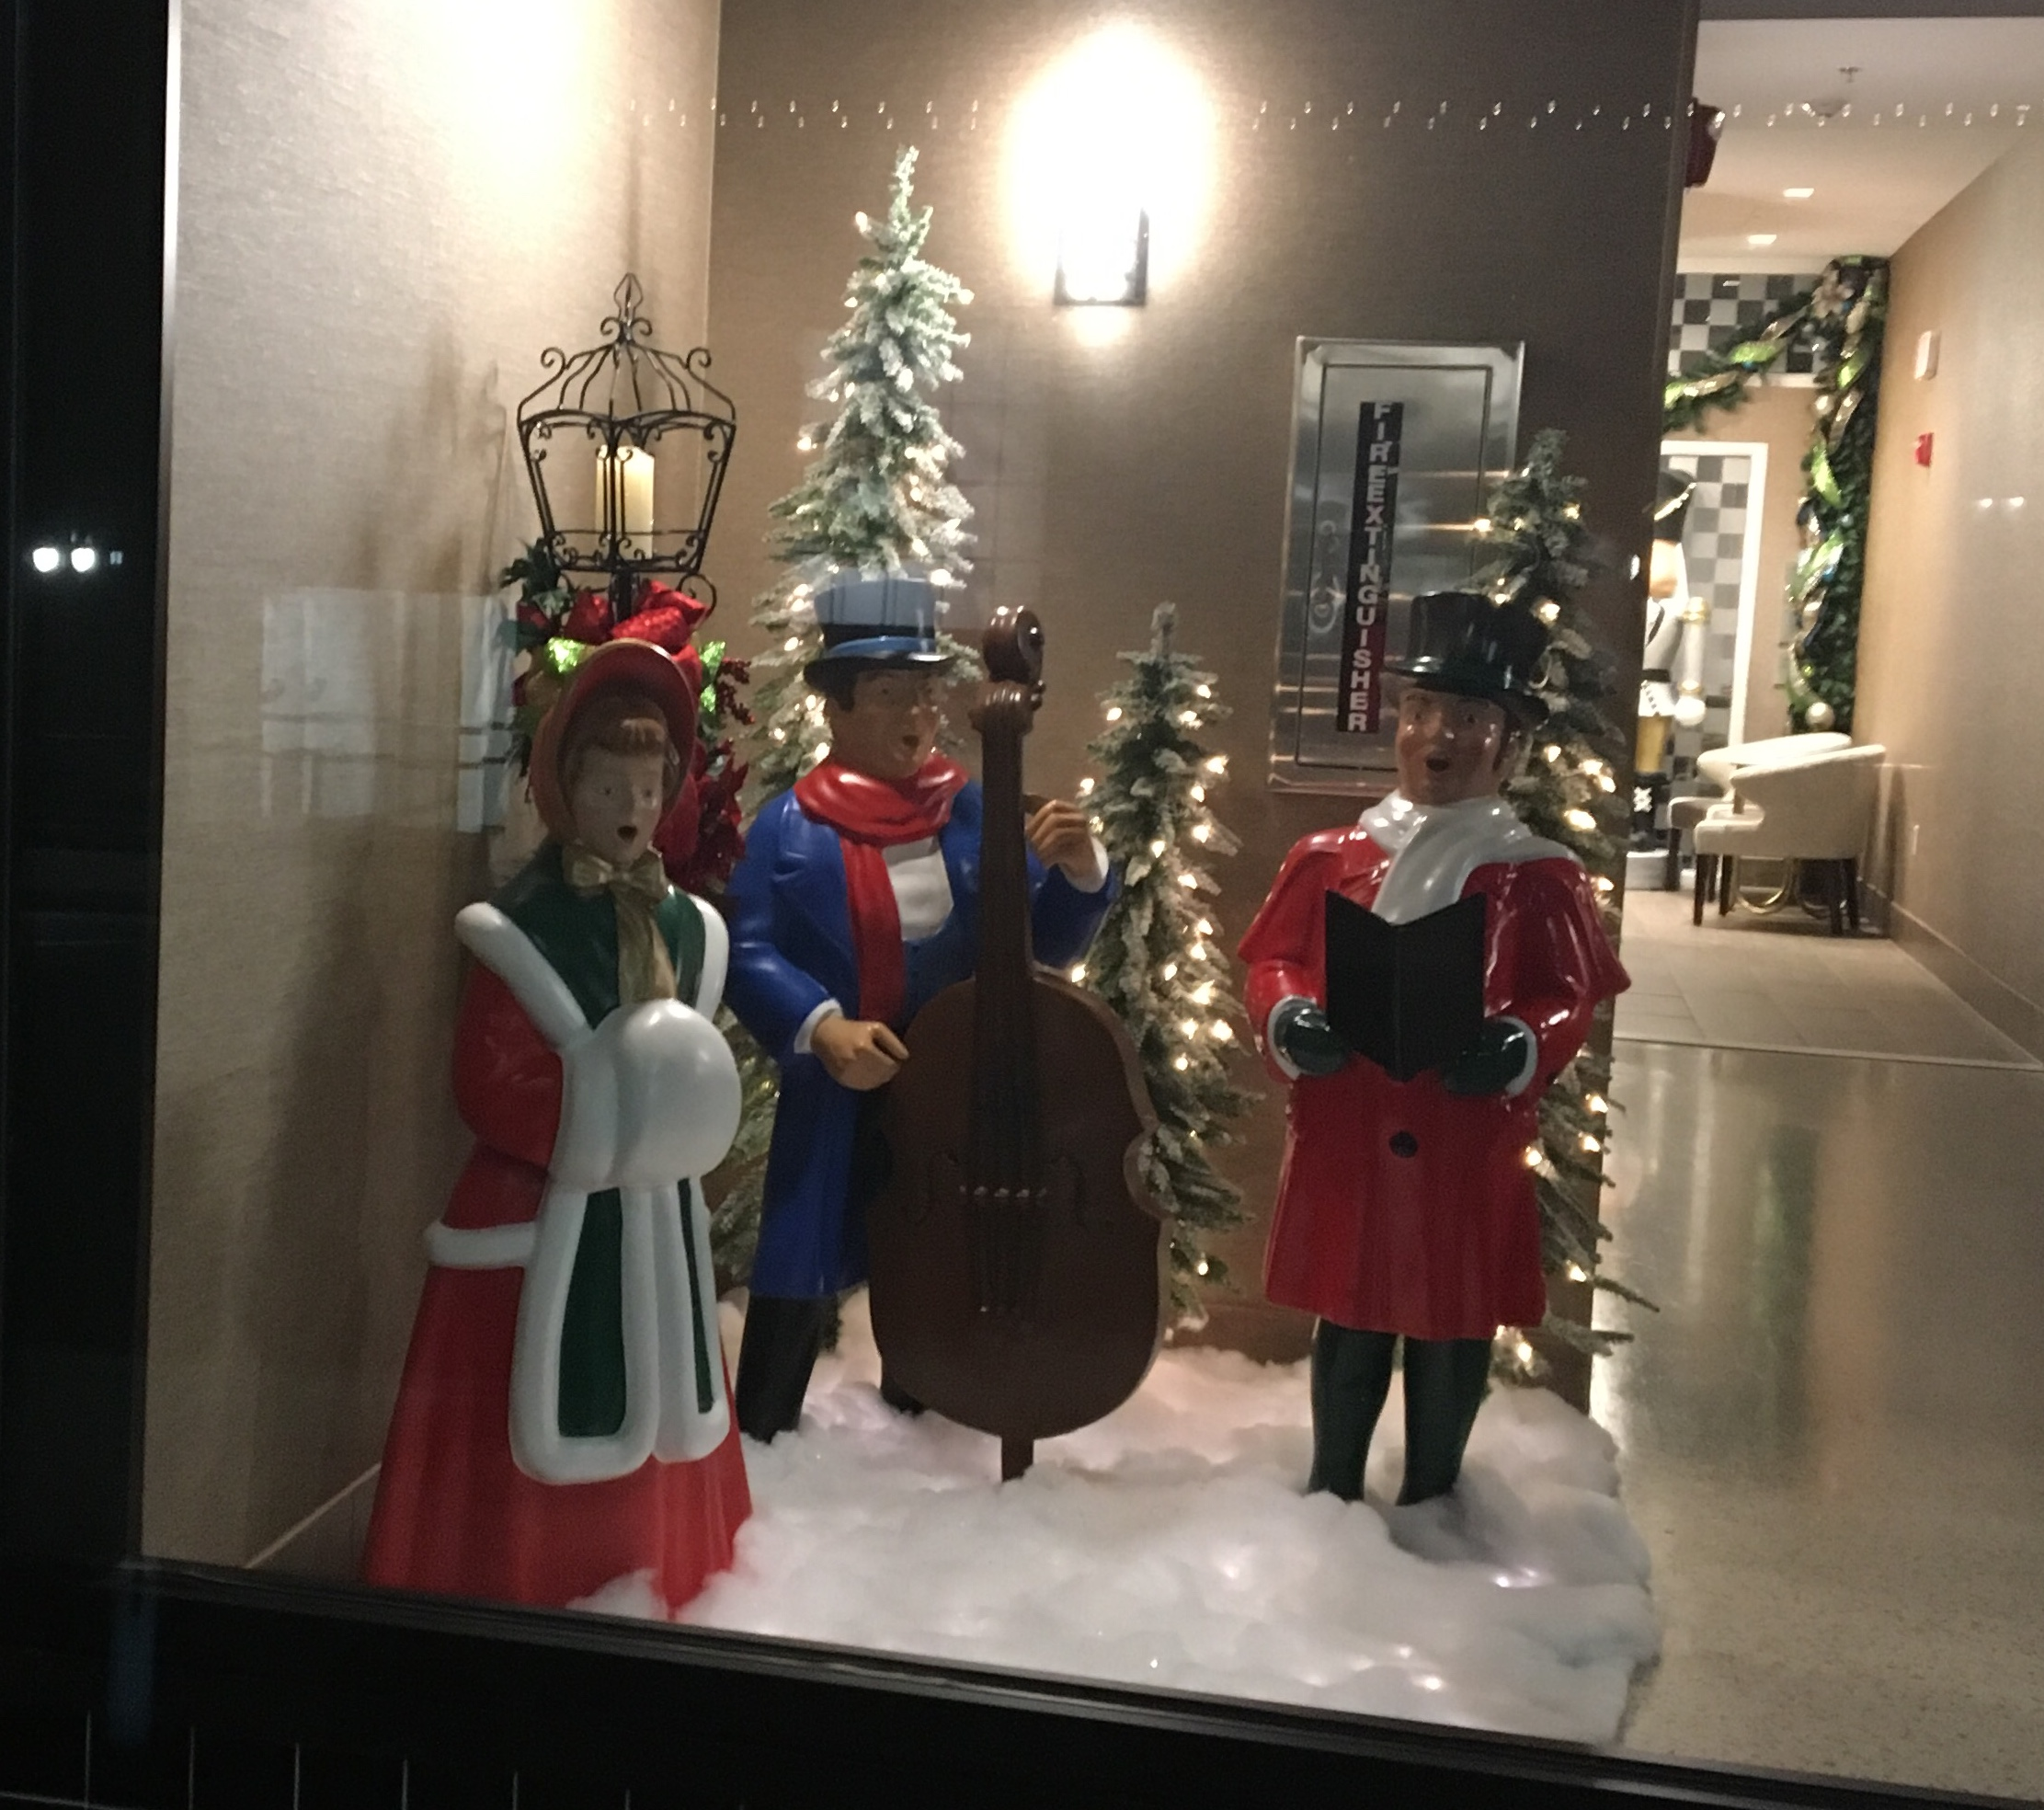 Fountain Street Entrance. Fiberglass scene of carolers, LED lights, faux snow and additional accessories.